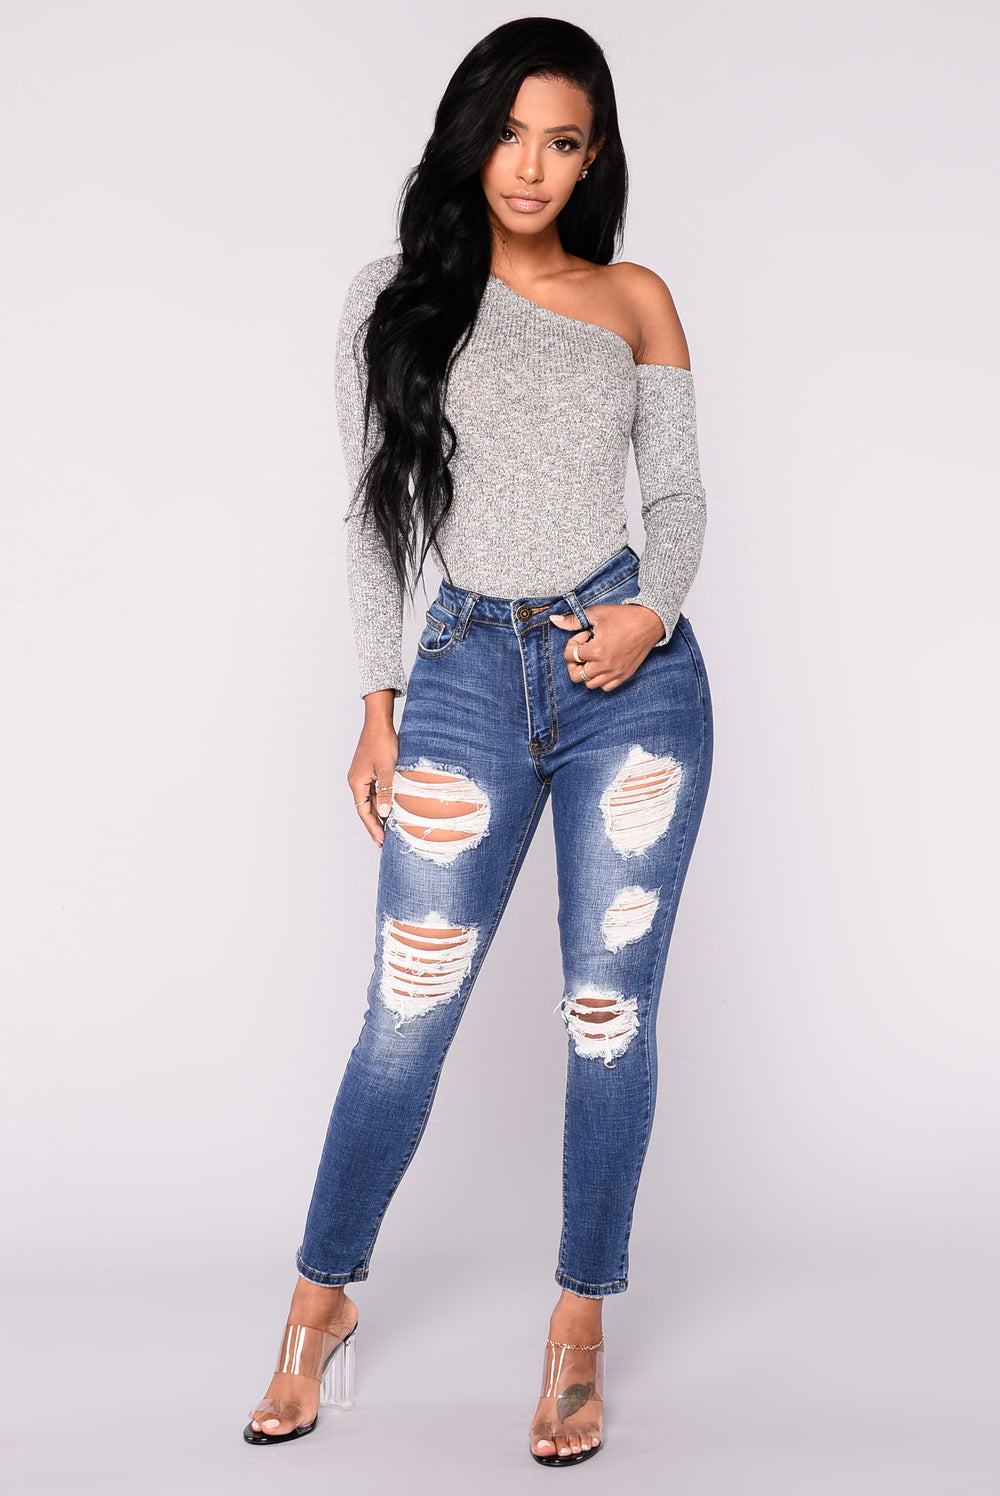 Obsess Over Me Top - Heather Grey